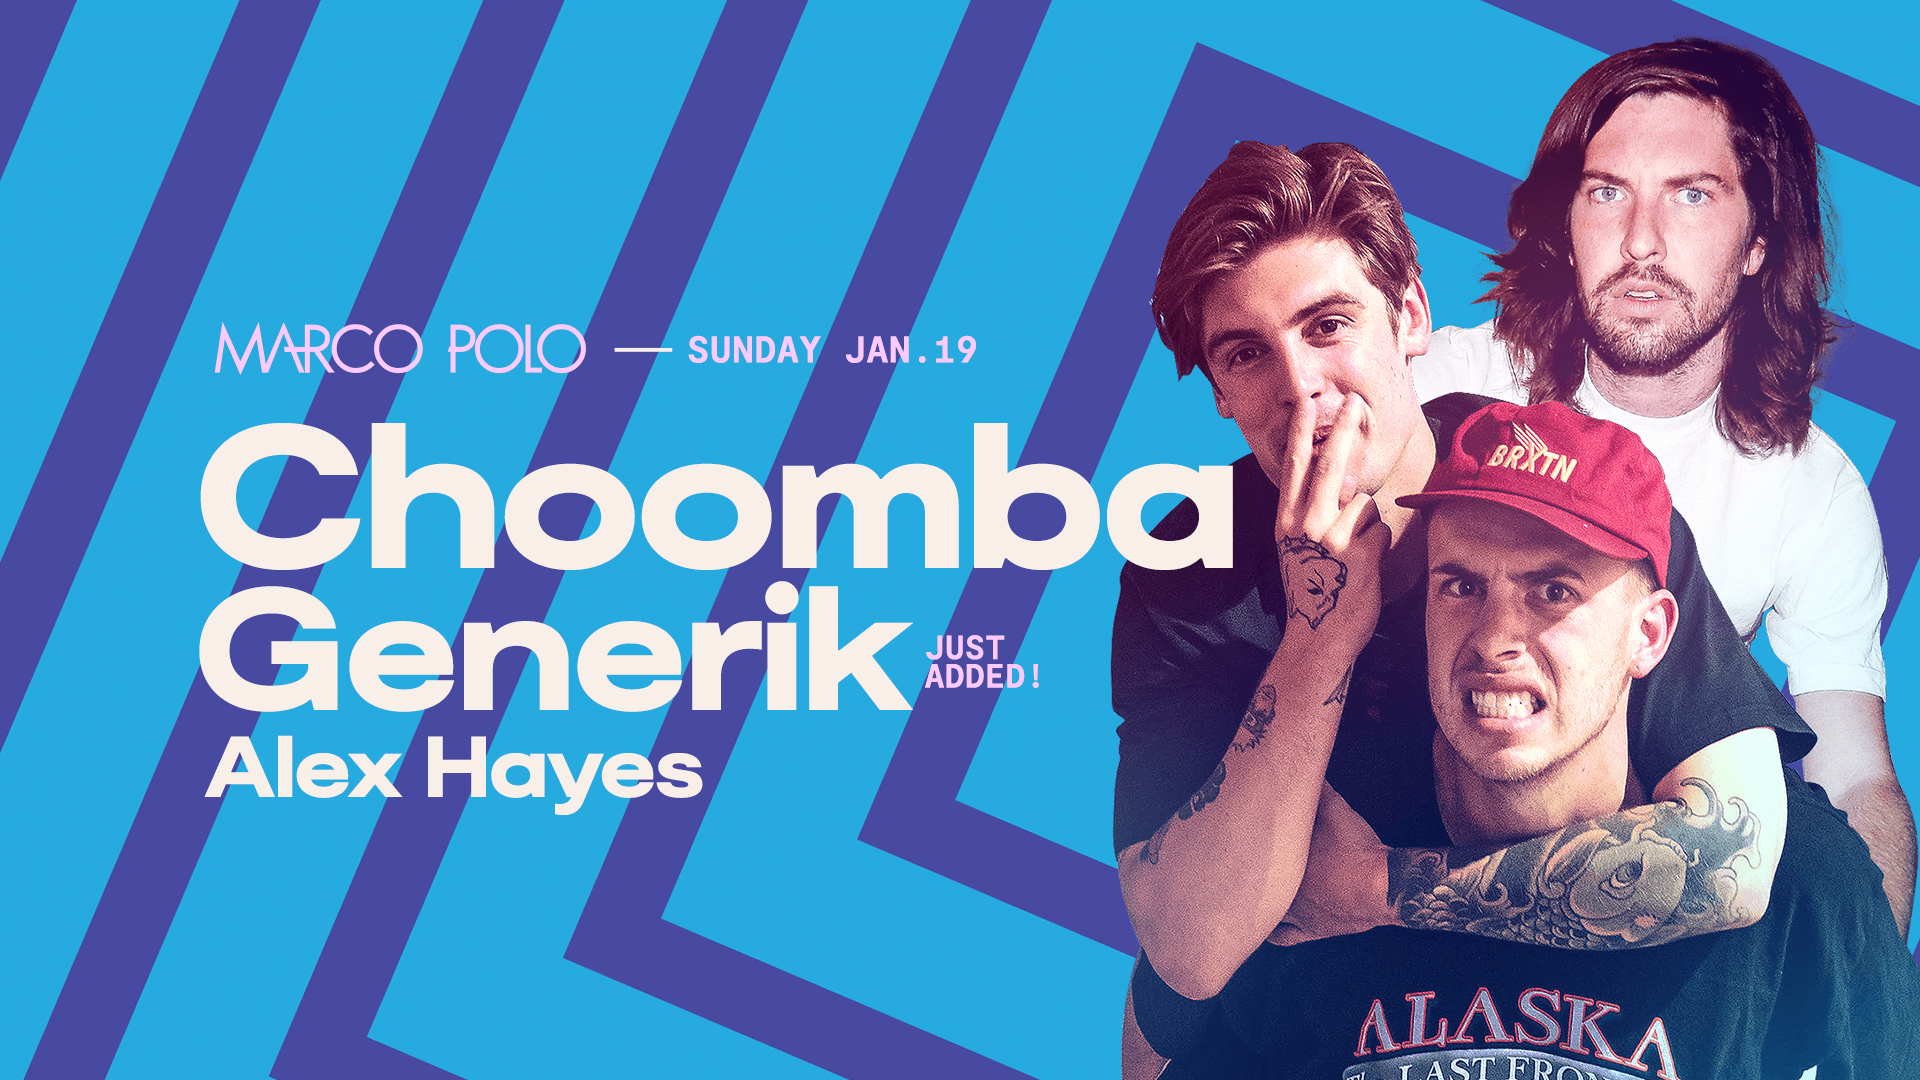 Tickets for Marco Polo ft. Choomba & Generik in Sydney from Merivale